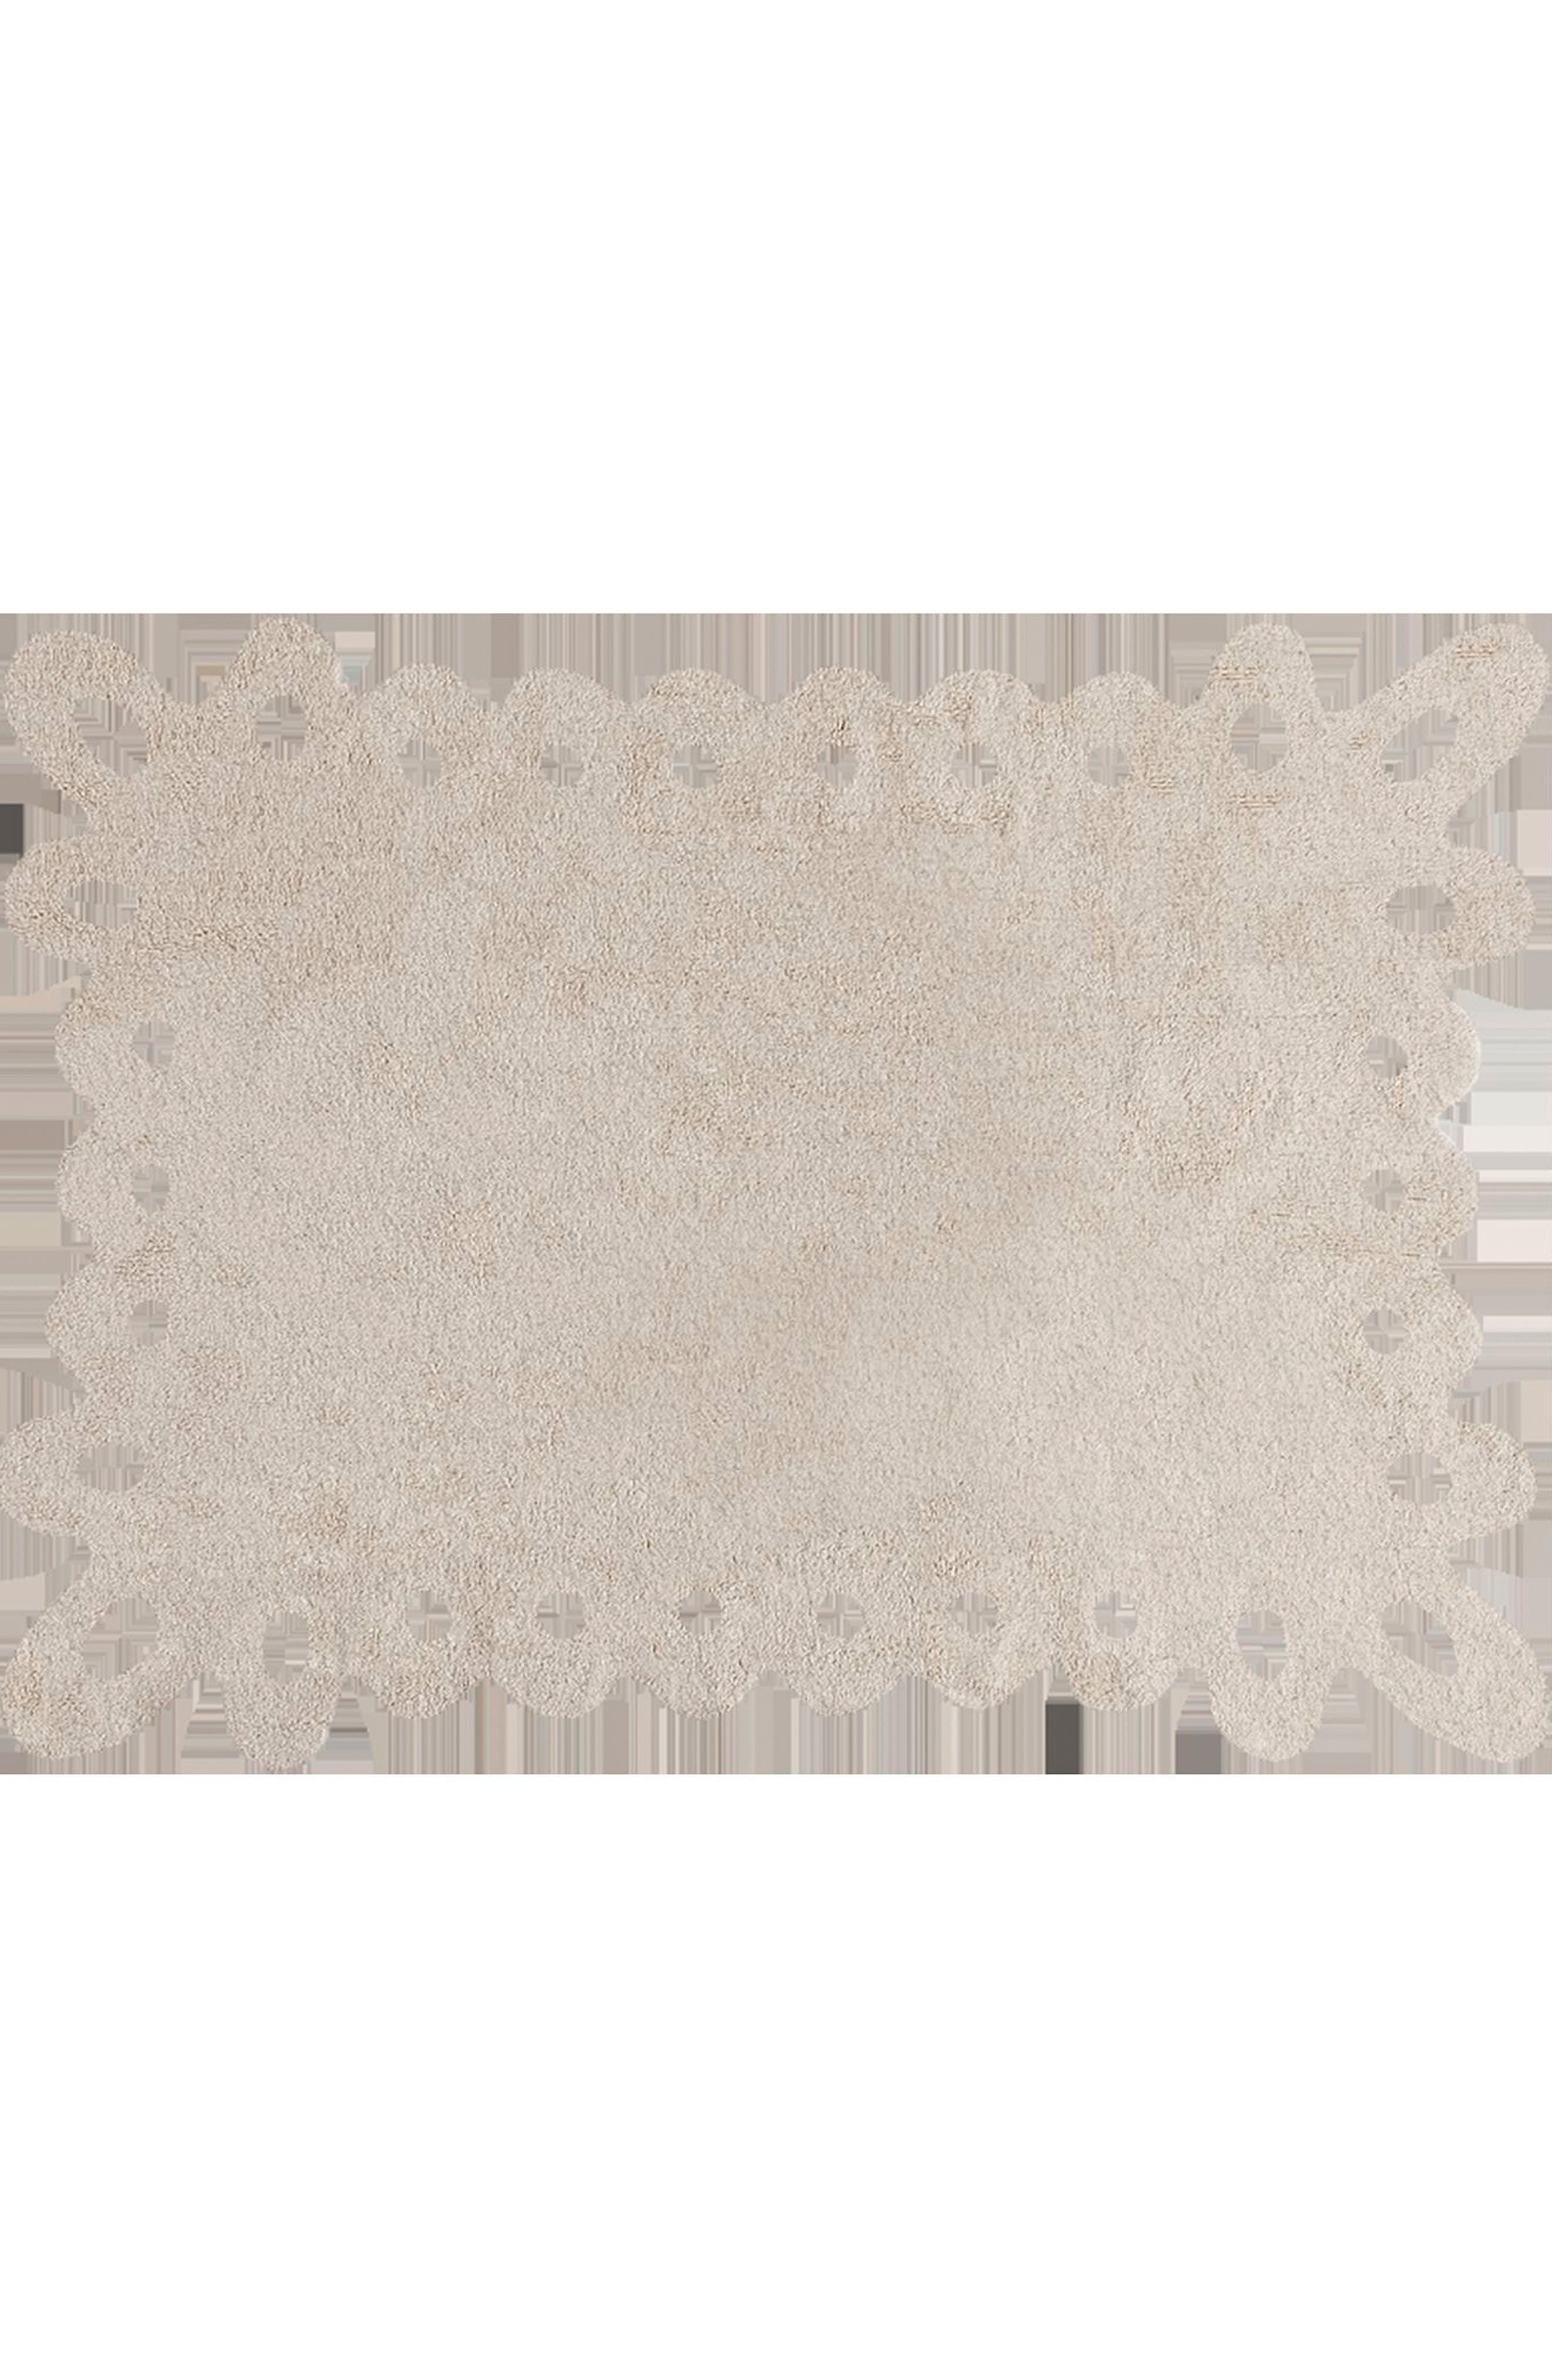 Main Image - Lorena Canals Lace Rug